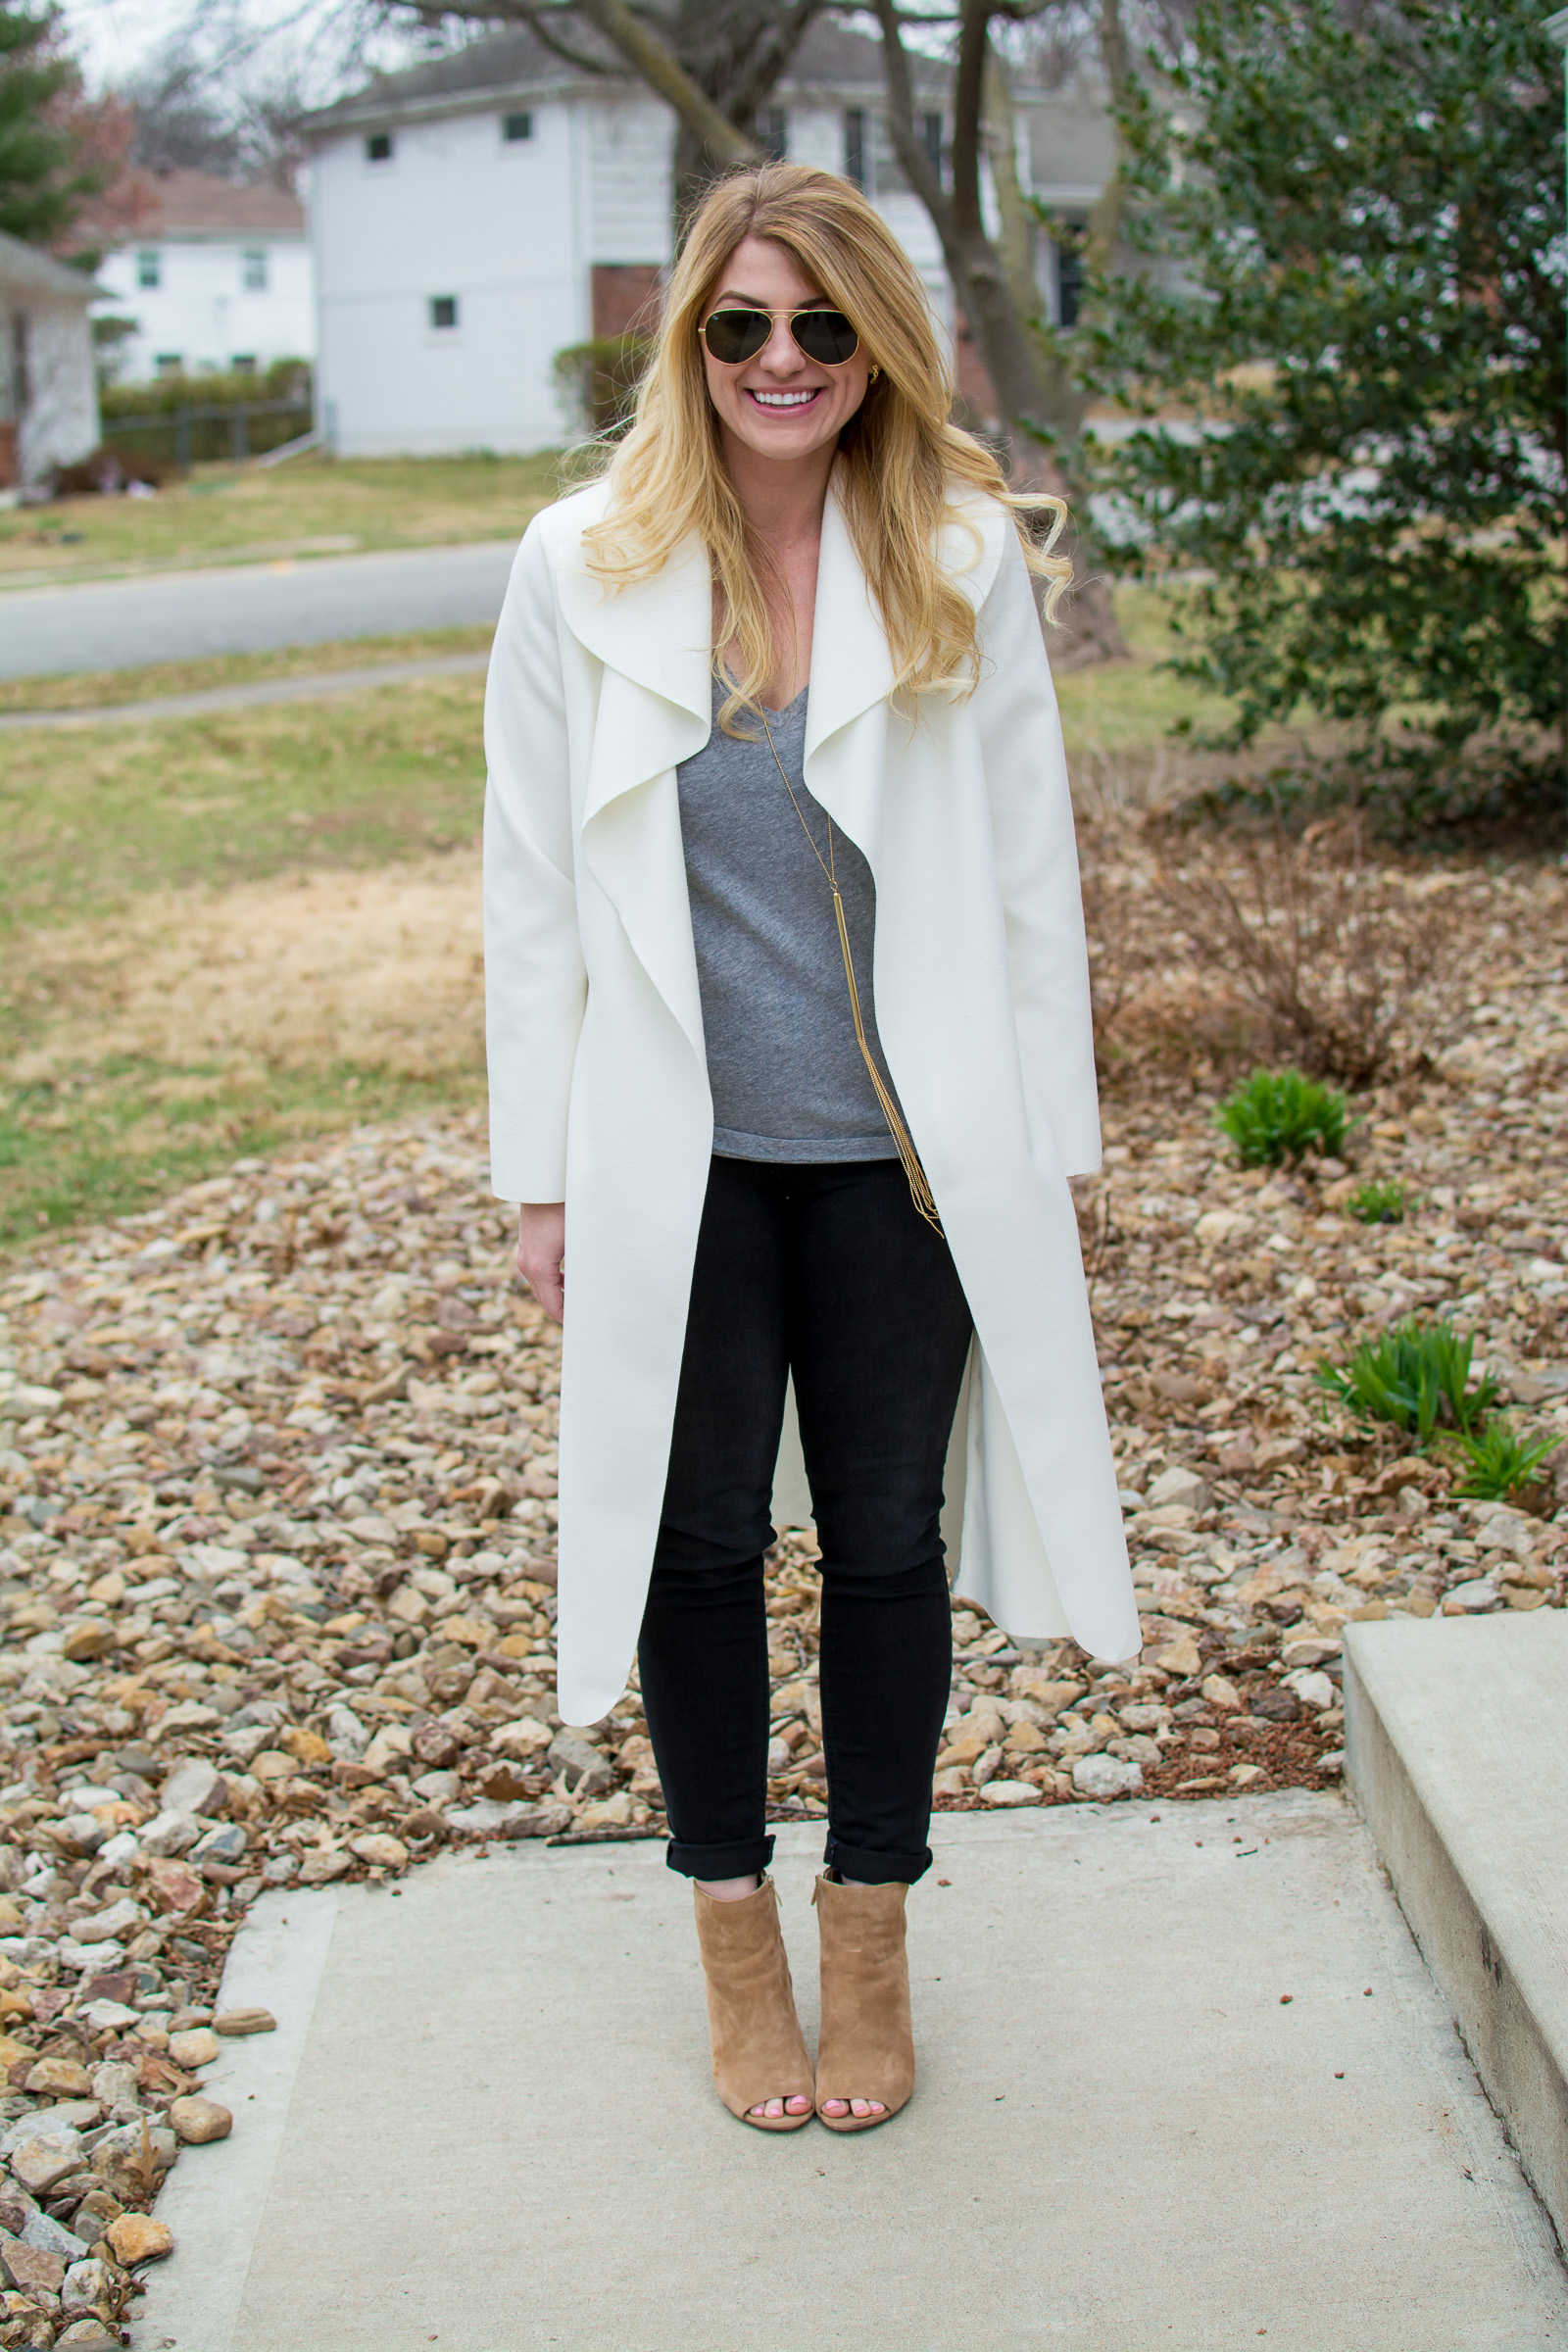 A White Duster for Early Spring. | Ashley from Le Stylo Rouge